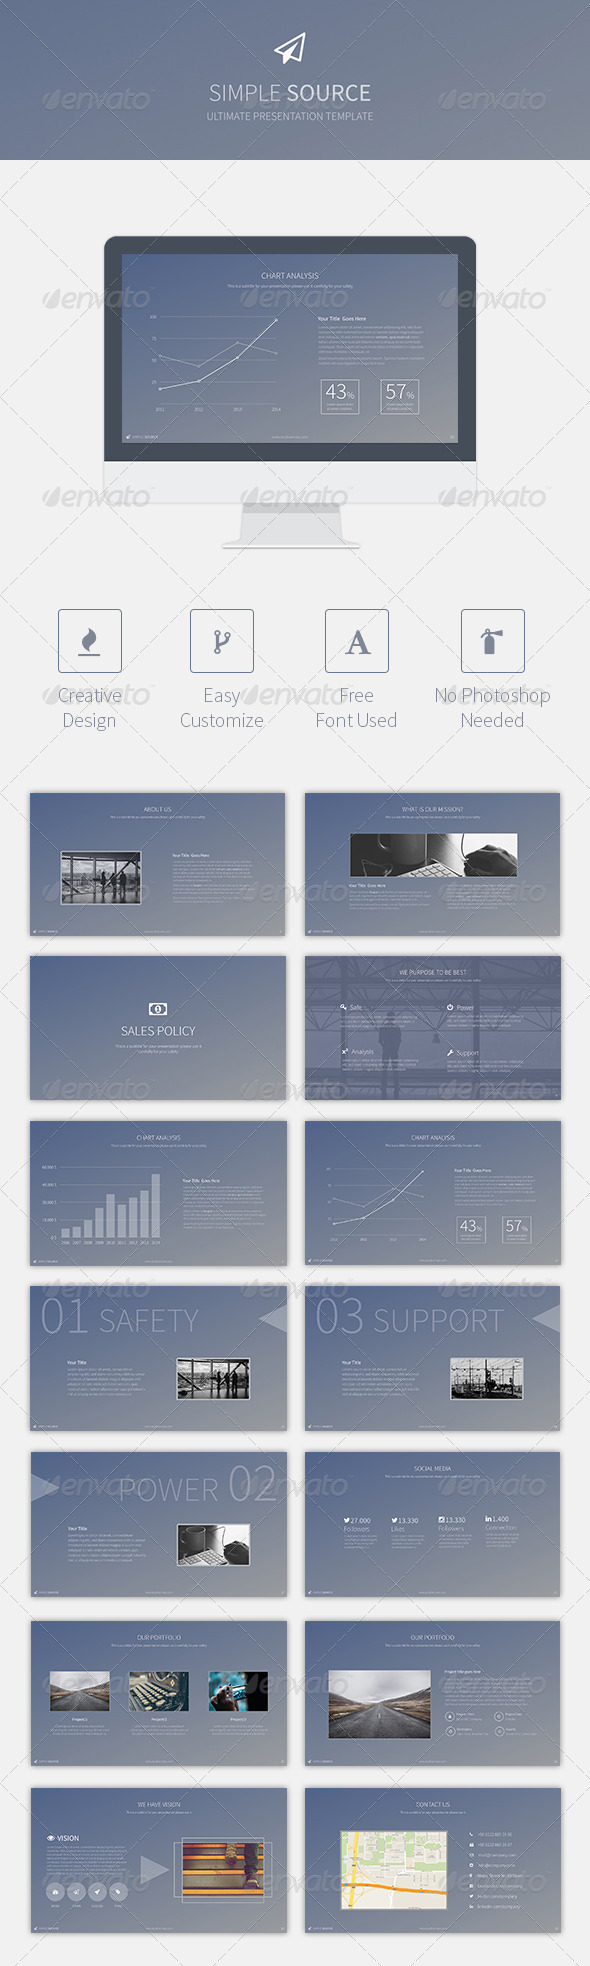 GraphicRiver Simple Source Keynote Template 8588882